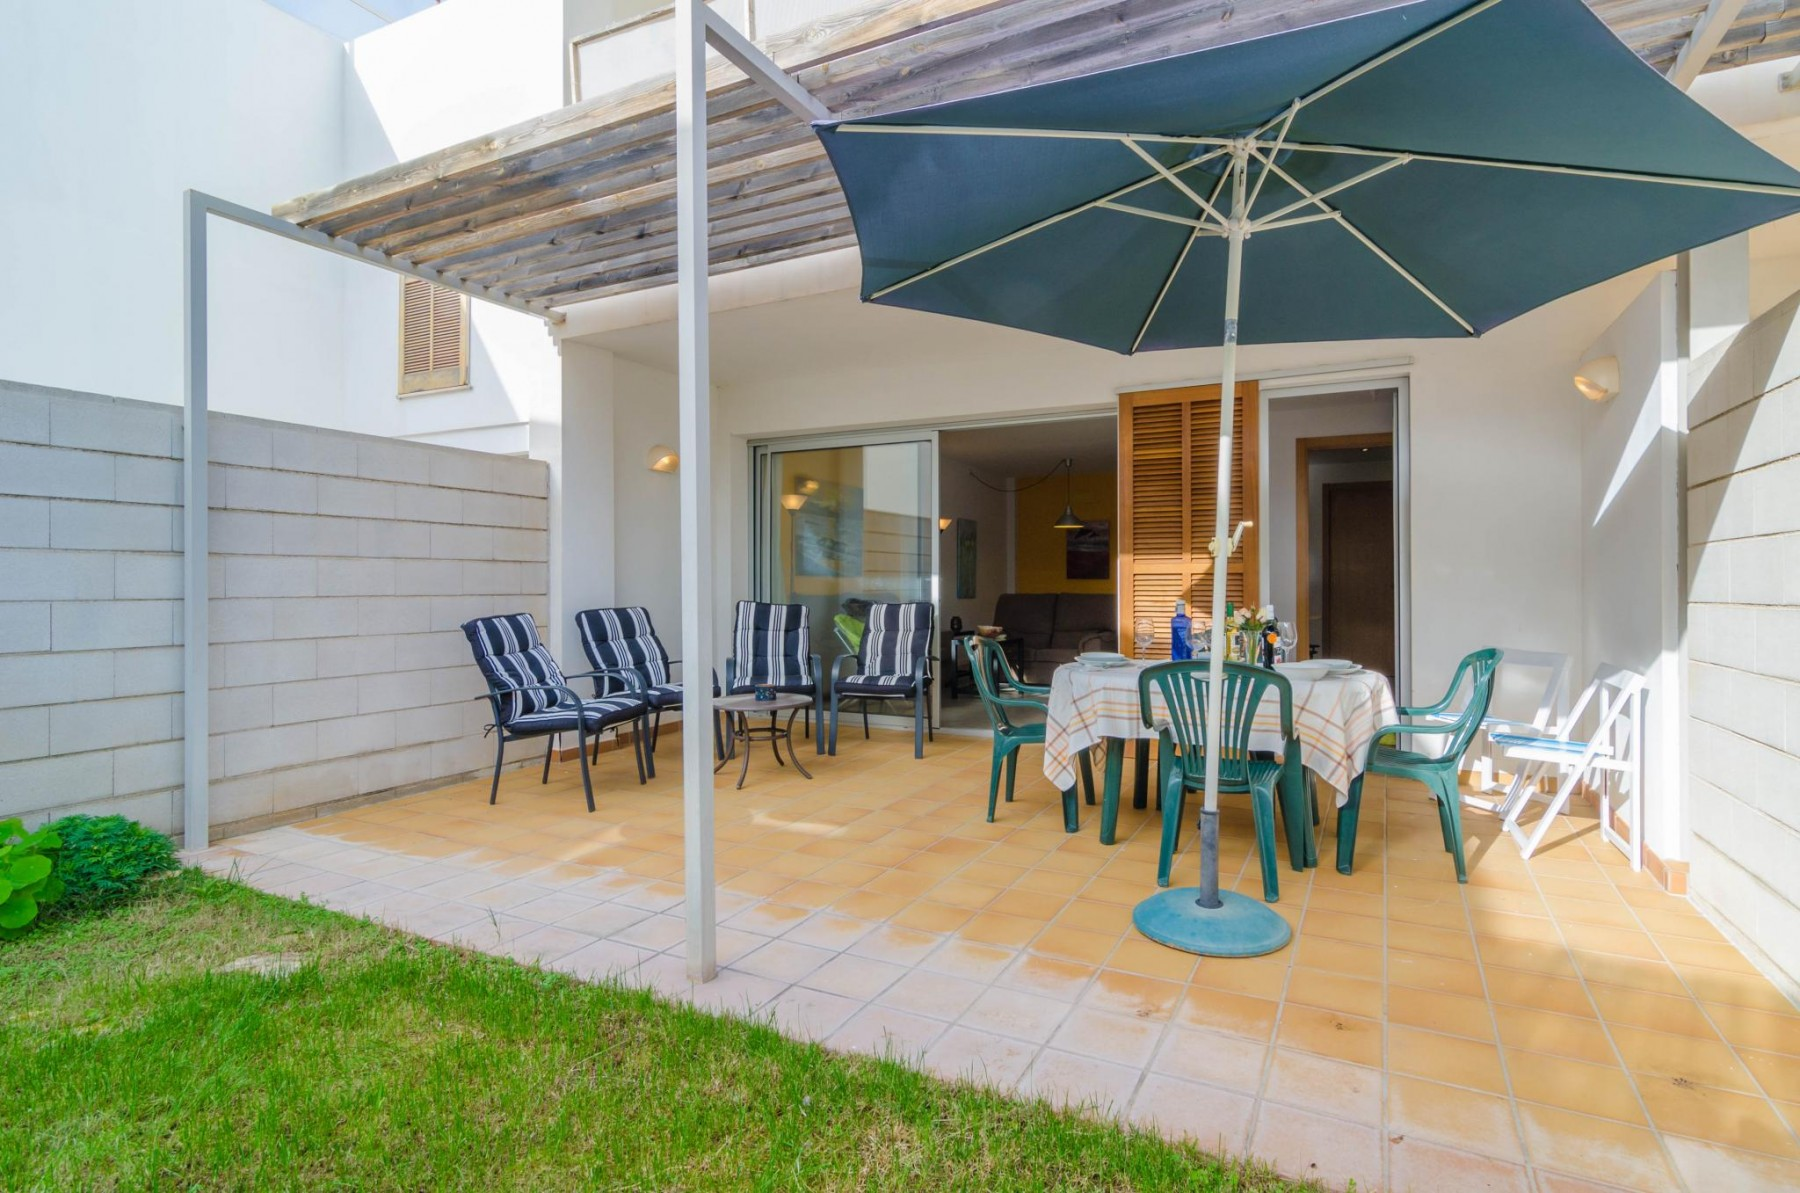 VERGE MARIA for 5 guests in Arta, Spanien